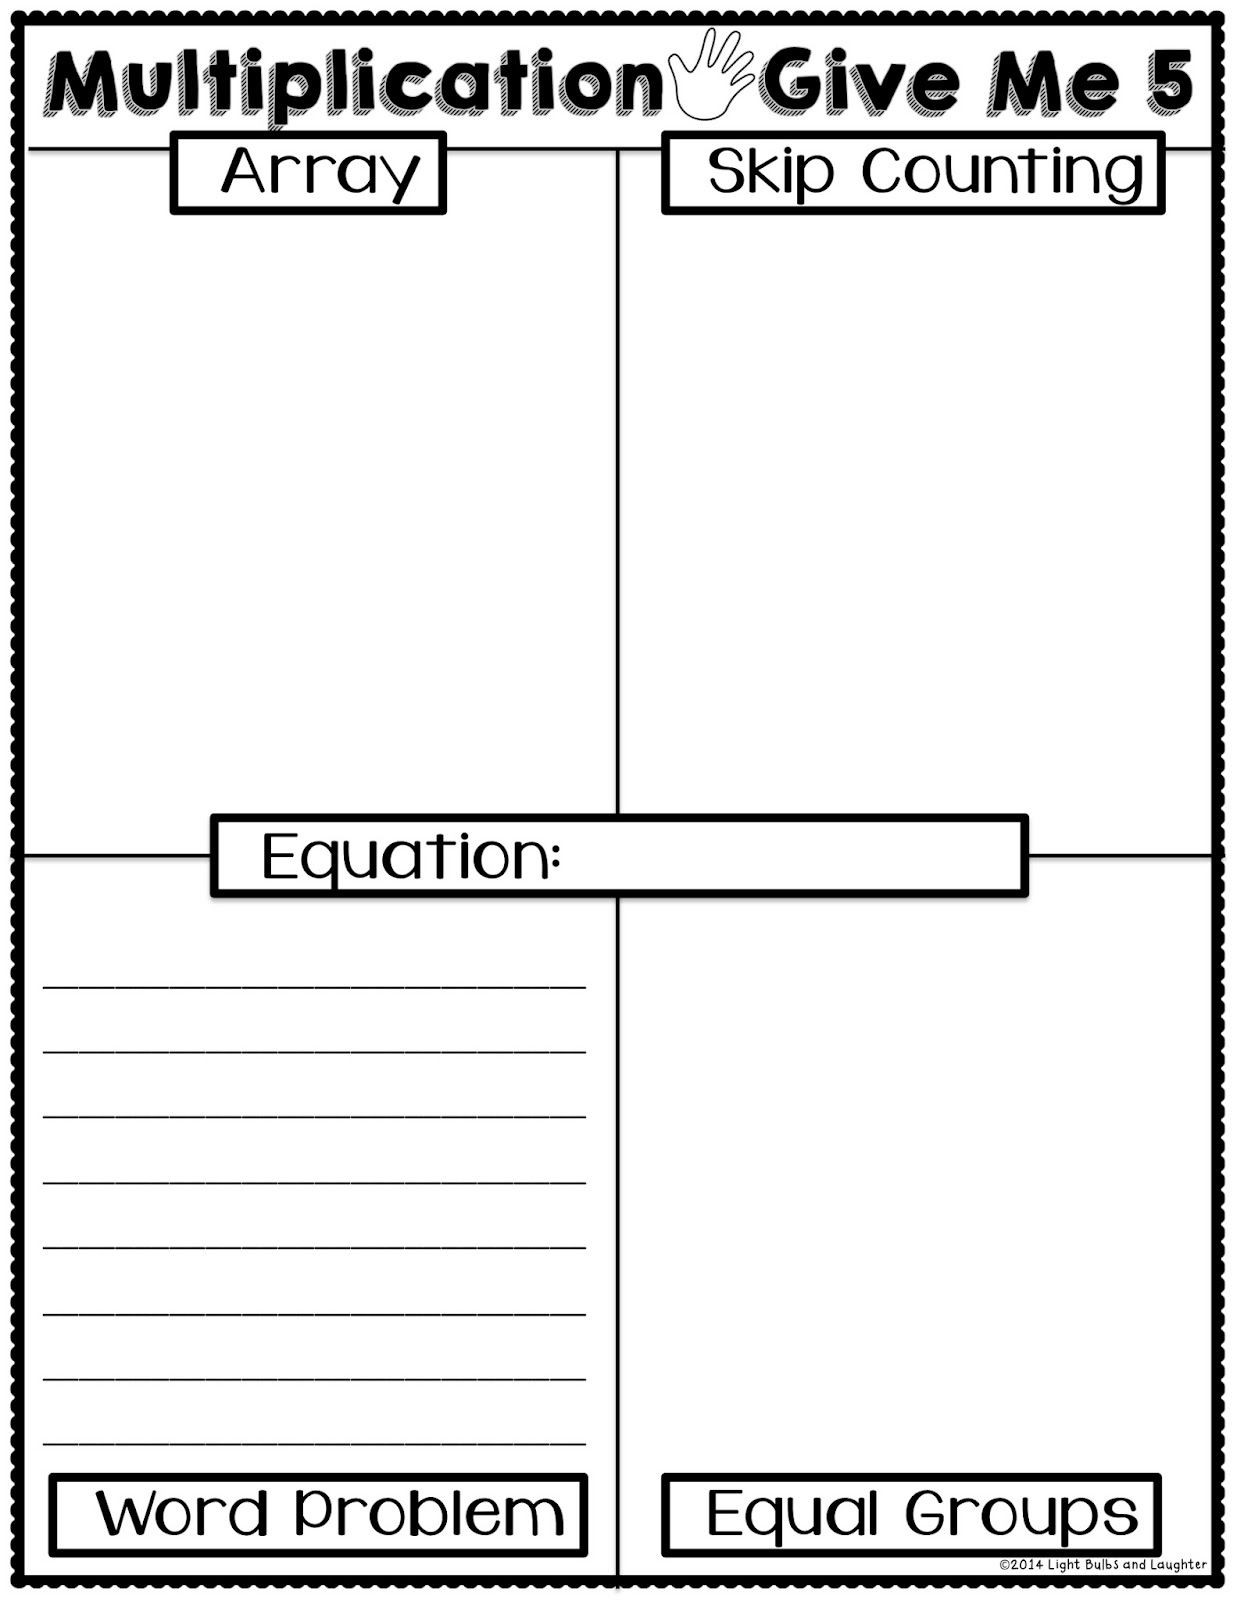 Arrays Worksheet 3rd Grade Light Bulbs and Laughter Multiplication Give Me 5